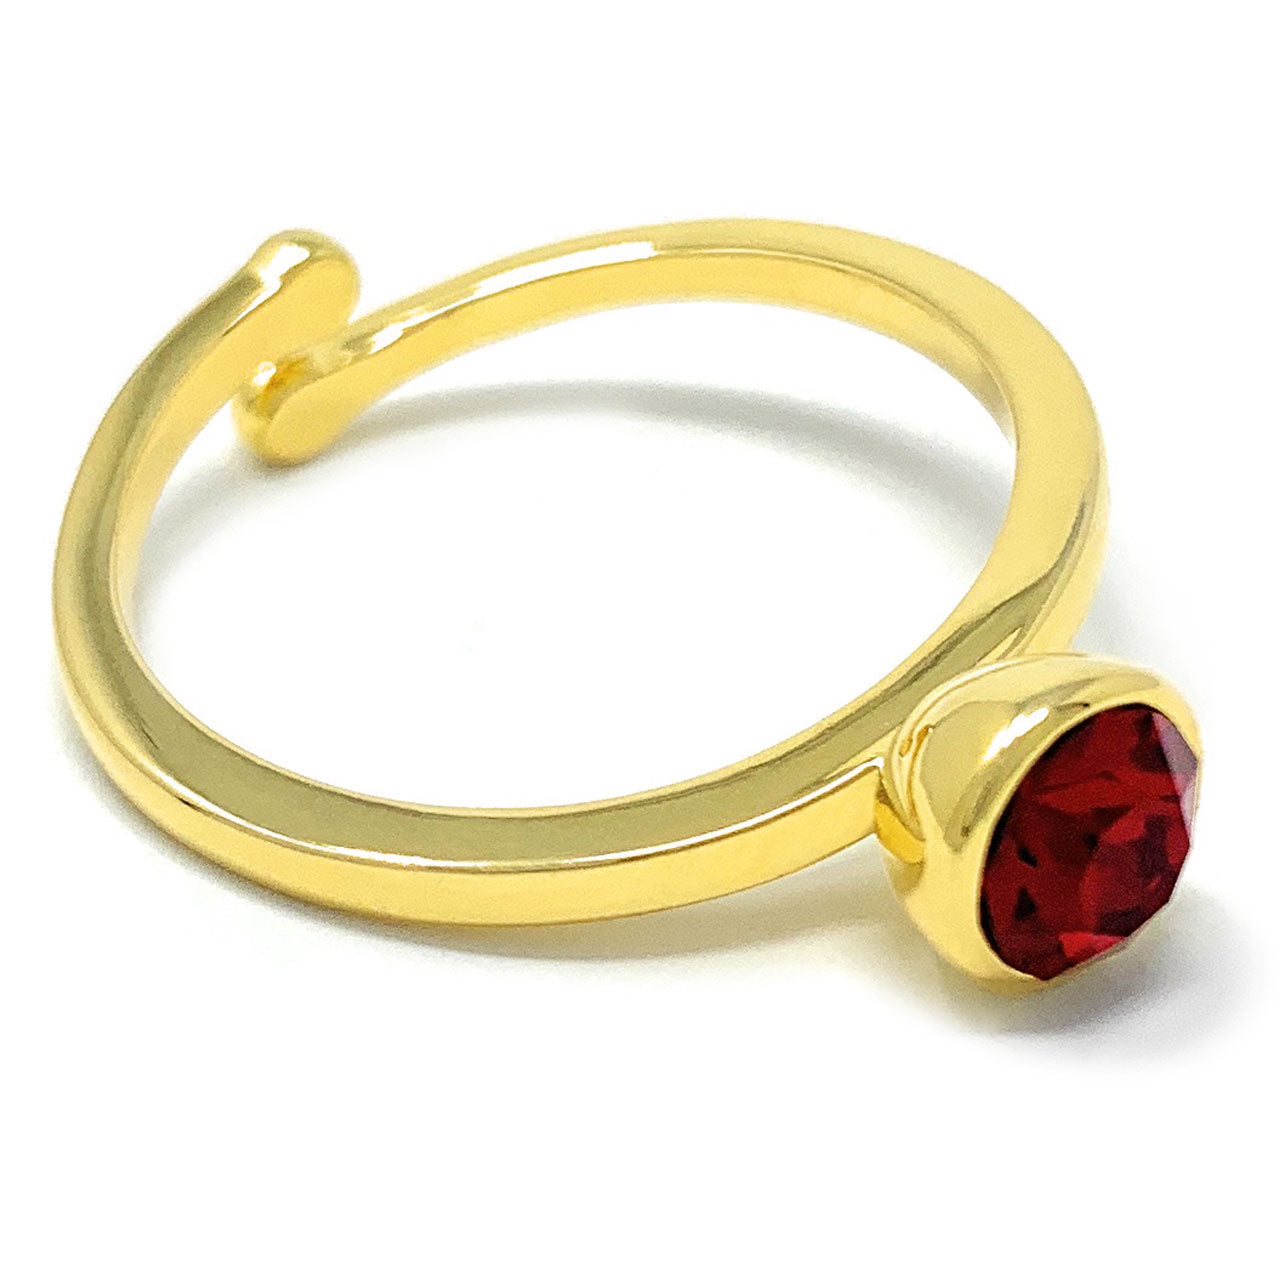 Harley Adjustable Ring with Red Siam Round Crystals from Swarovski Gold Plated - Ed Heart